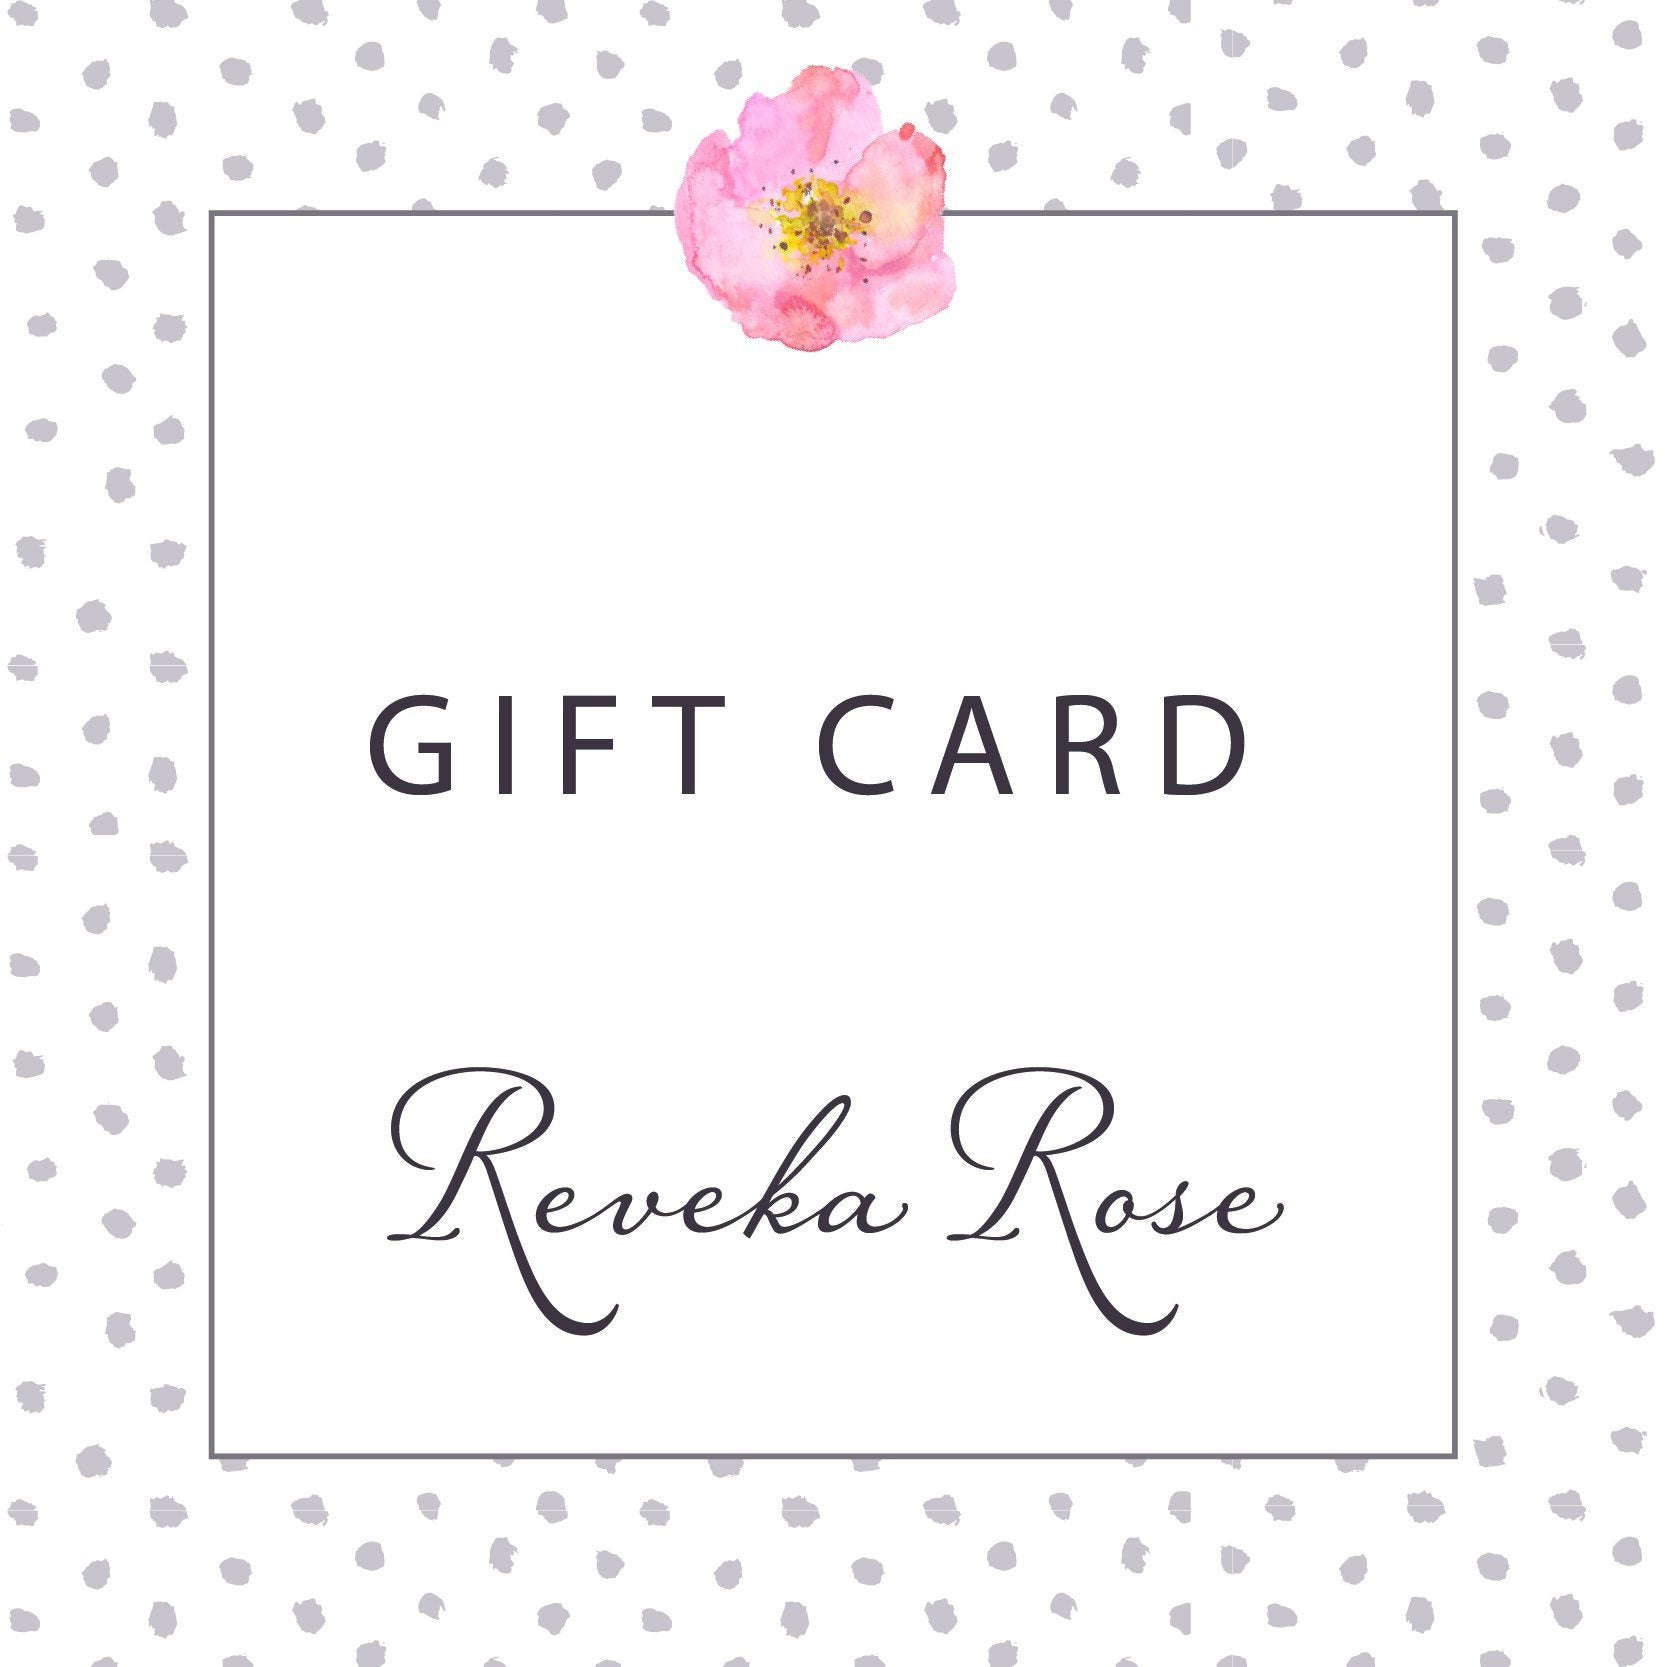 Gift Card - Reveka Rose